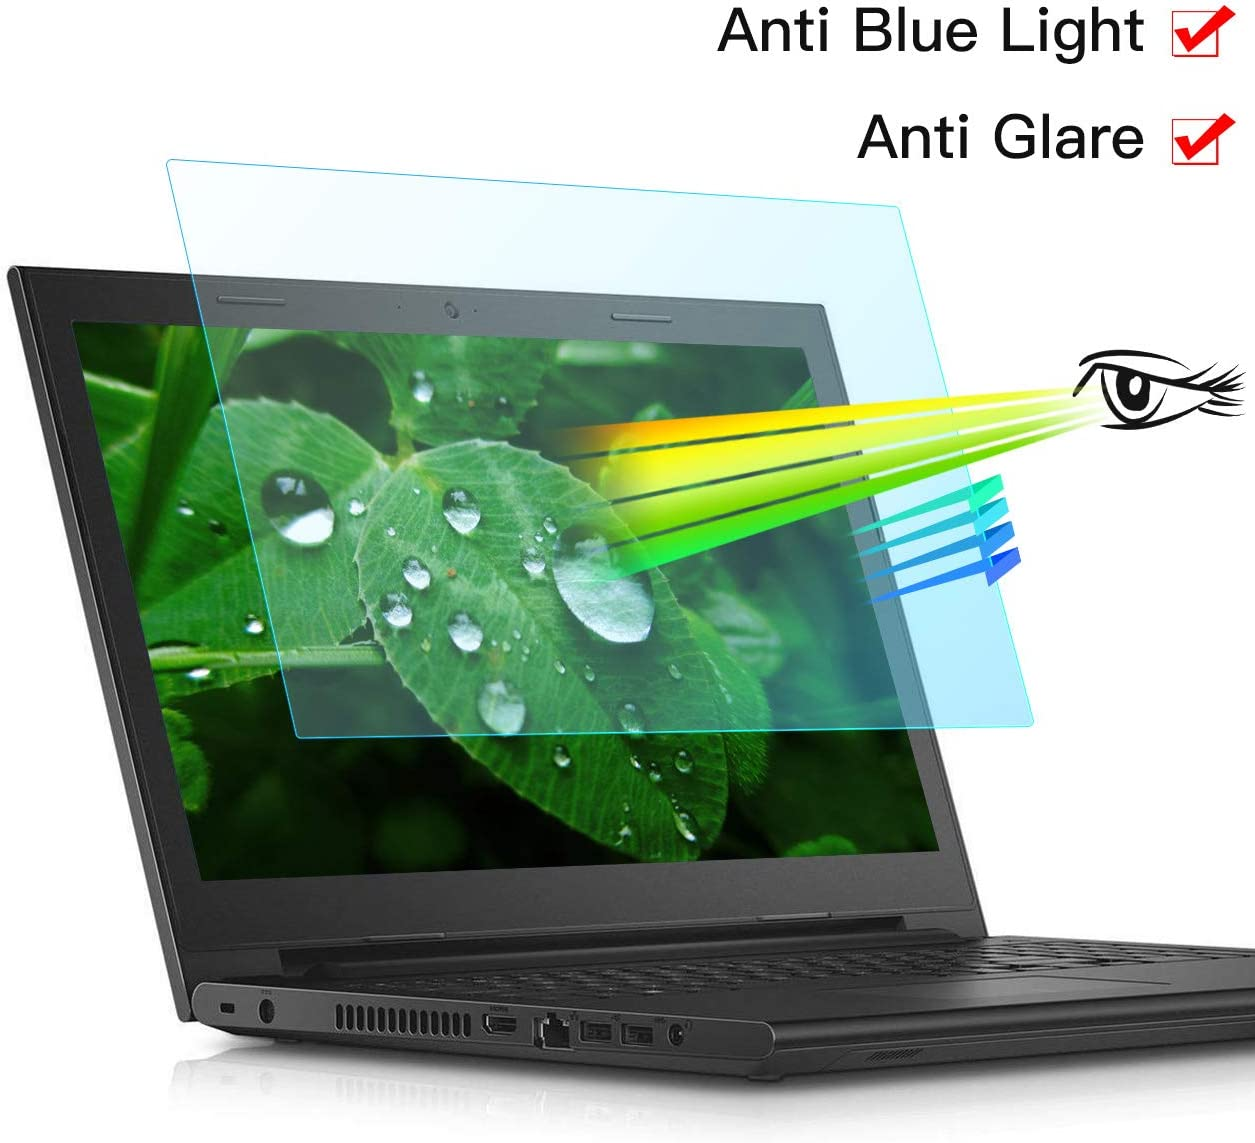 "11.6"" Anti Glare Anti Blue Light Laptop Screen Protector-Eye Protection Filter for All(HP/DELL/Asus/Acer/Sony/Samsung/Lenovo/Toshiba) 11.6"" 16:9 Laptop,1 PCS(11.6S)"